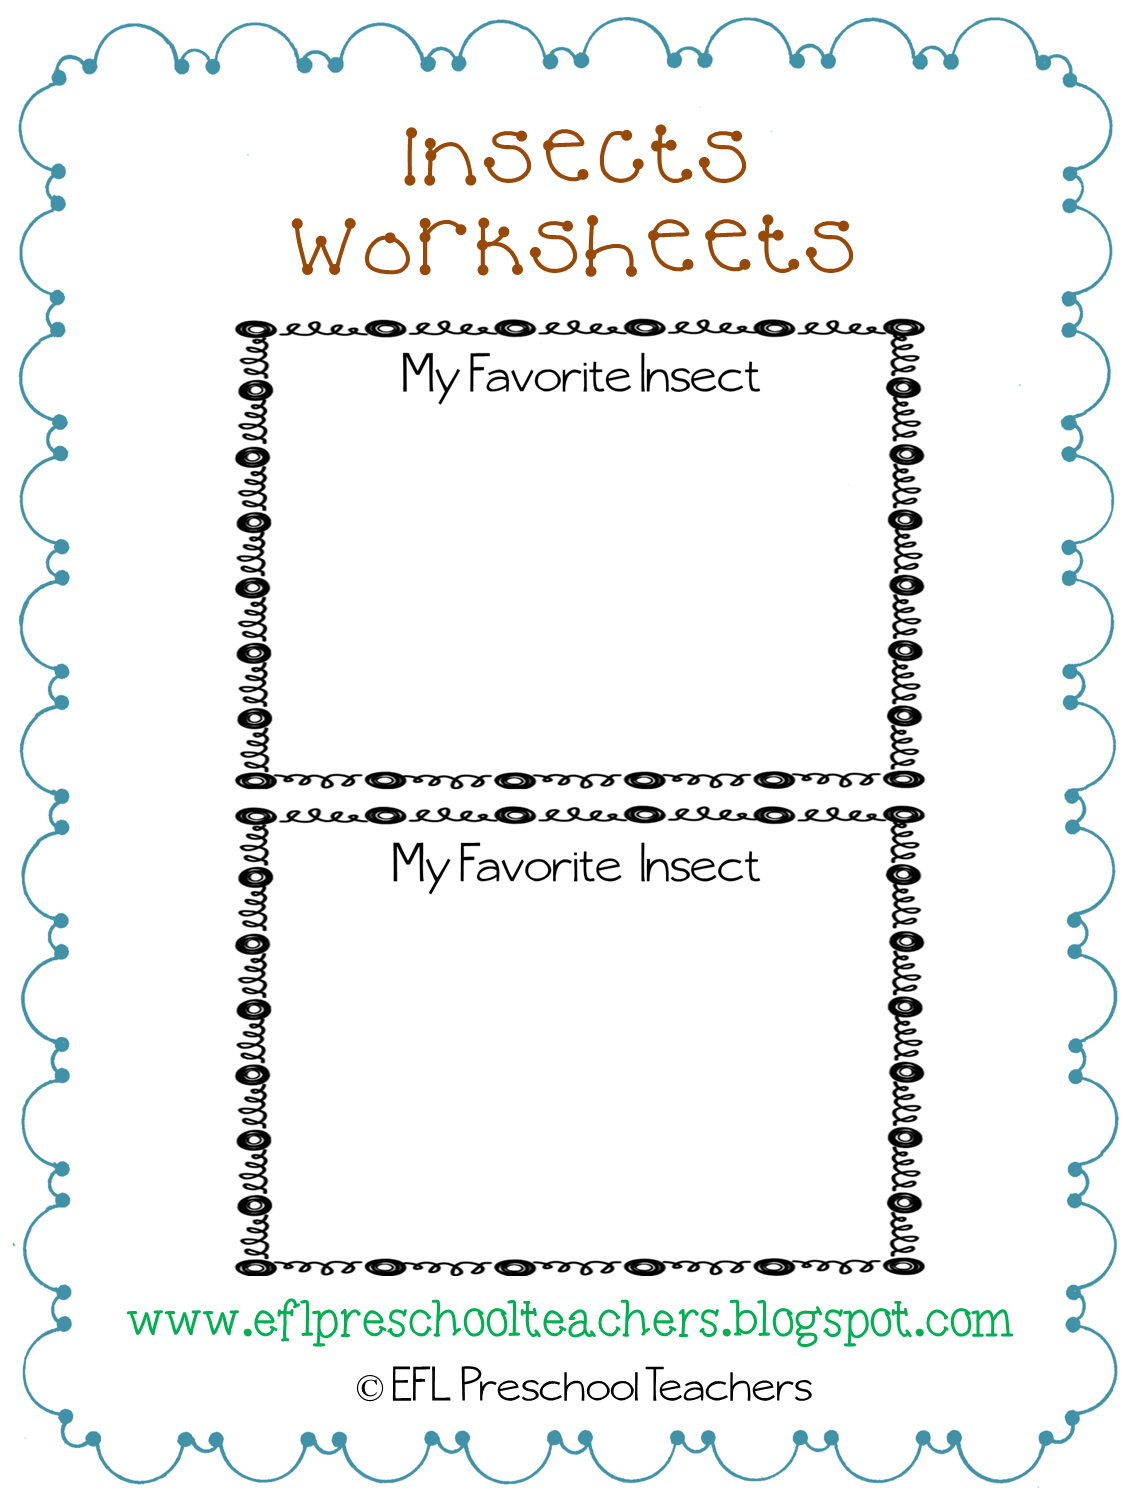 insect templates 100 images esl efl preschool teachers